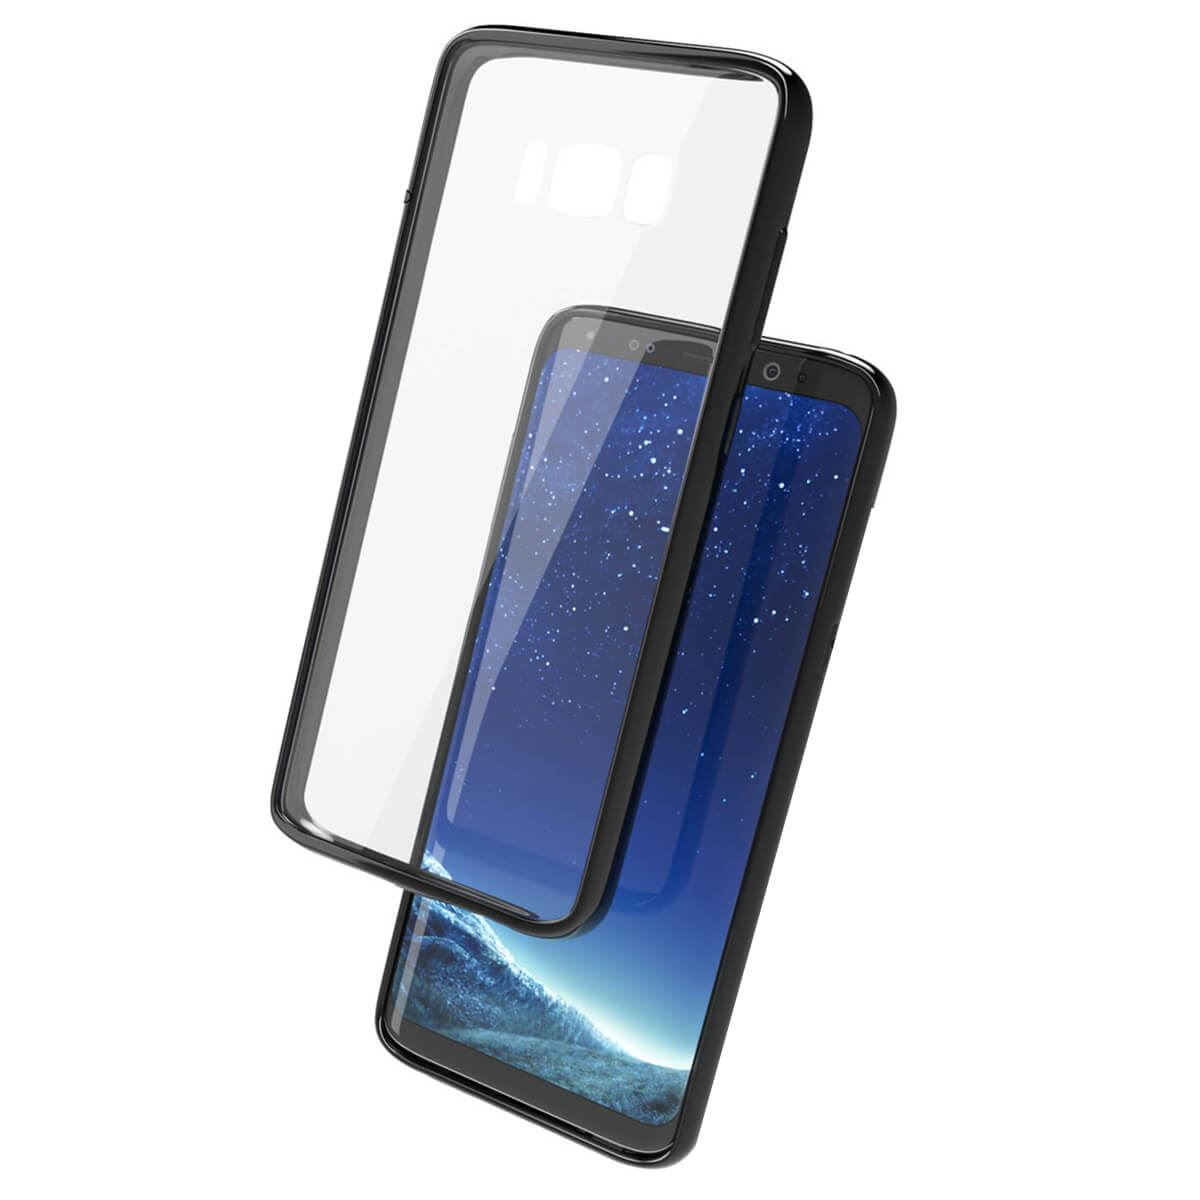 Shockproof-TPU-Bumper-Case-Samsung-Galaxy-S8-Plus-Note-8-Gel-Crystal-Clear-Cover thumbnail 8